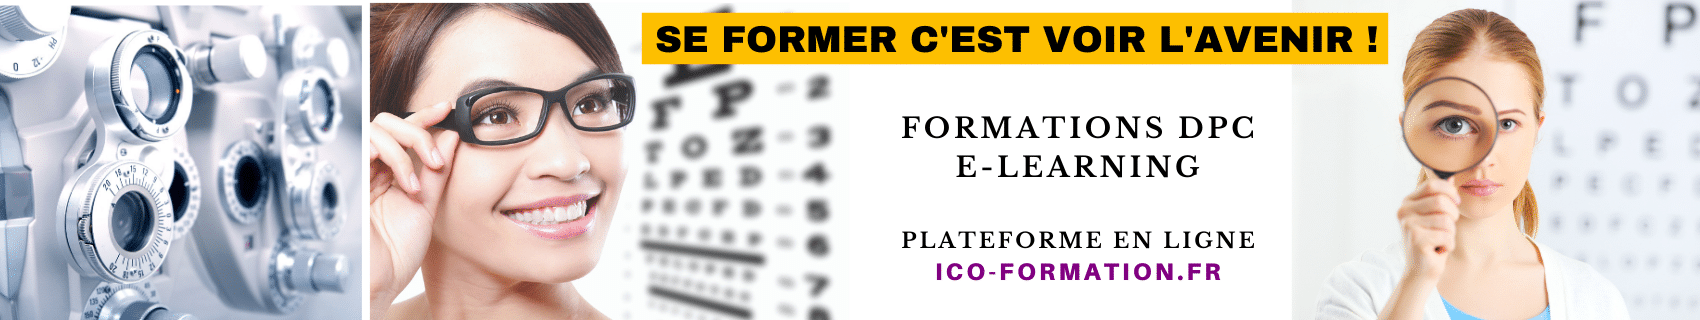 formations dpc pour opticien formations elearning